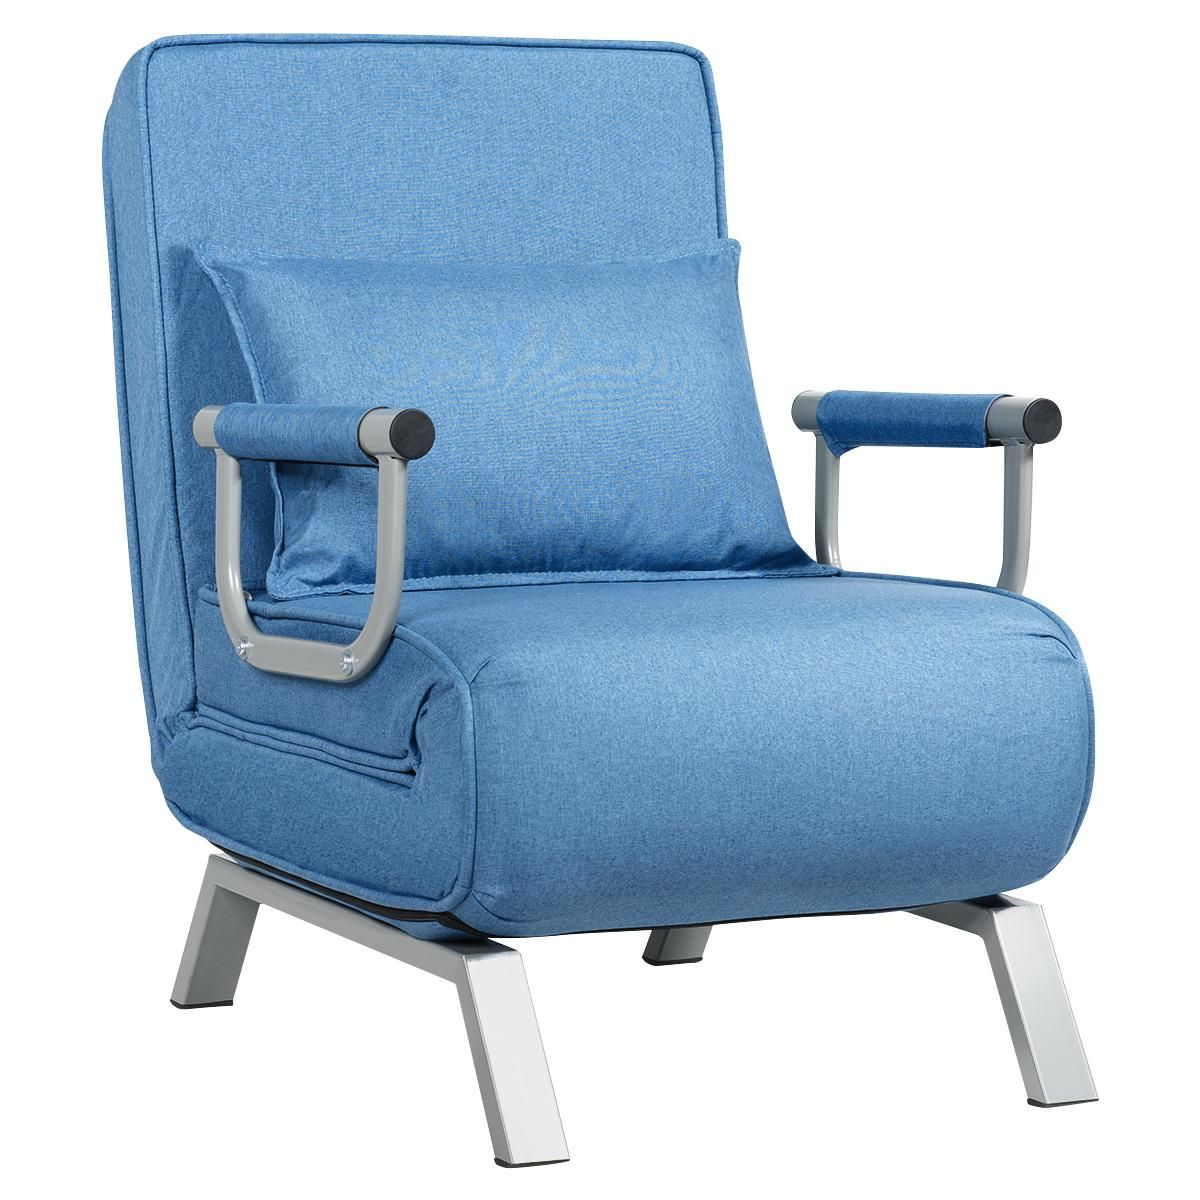 Gymax 5 Position Convertible Sofa Chair Folding Sleeper Bed w/ Pillow Blue/Gray